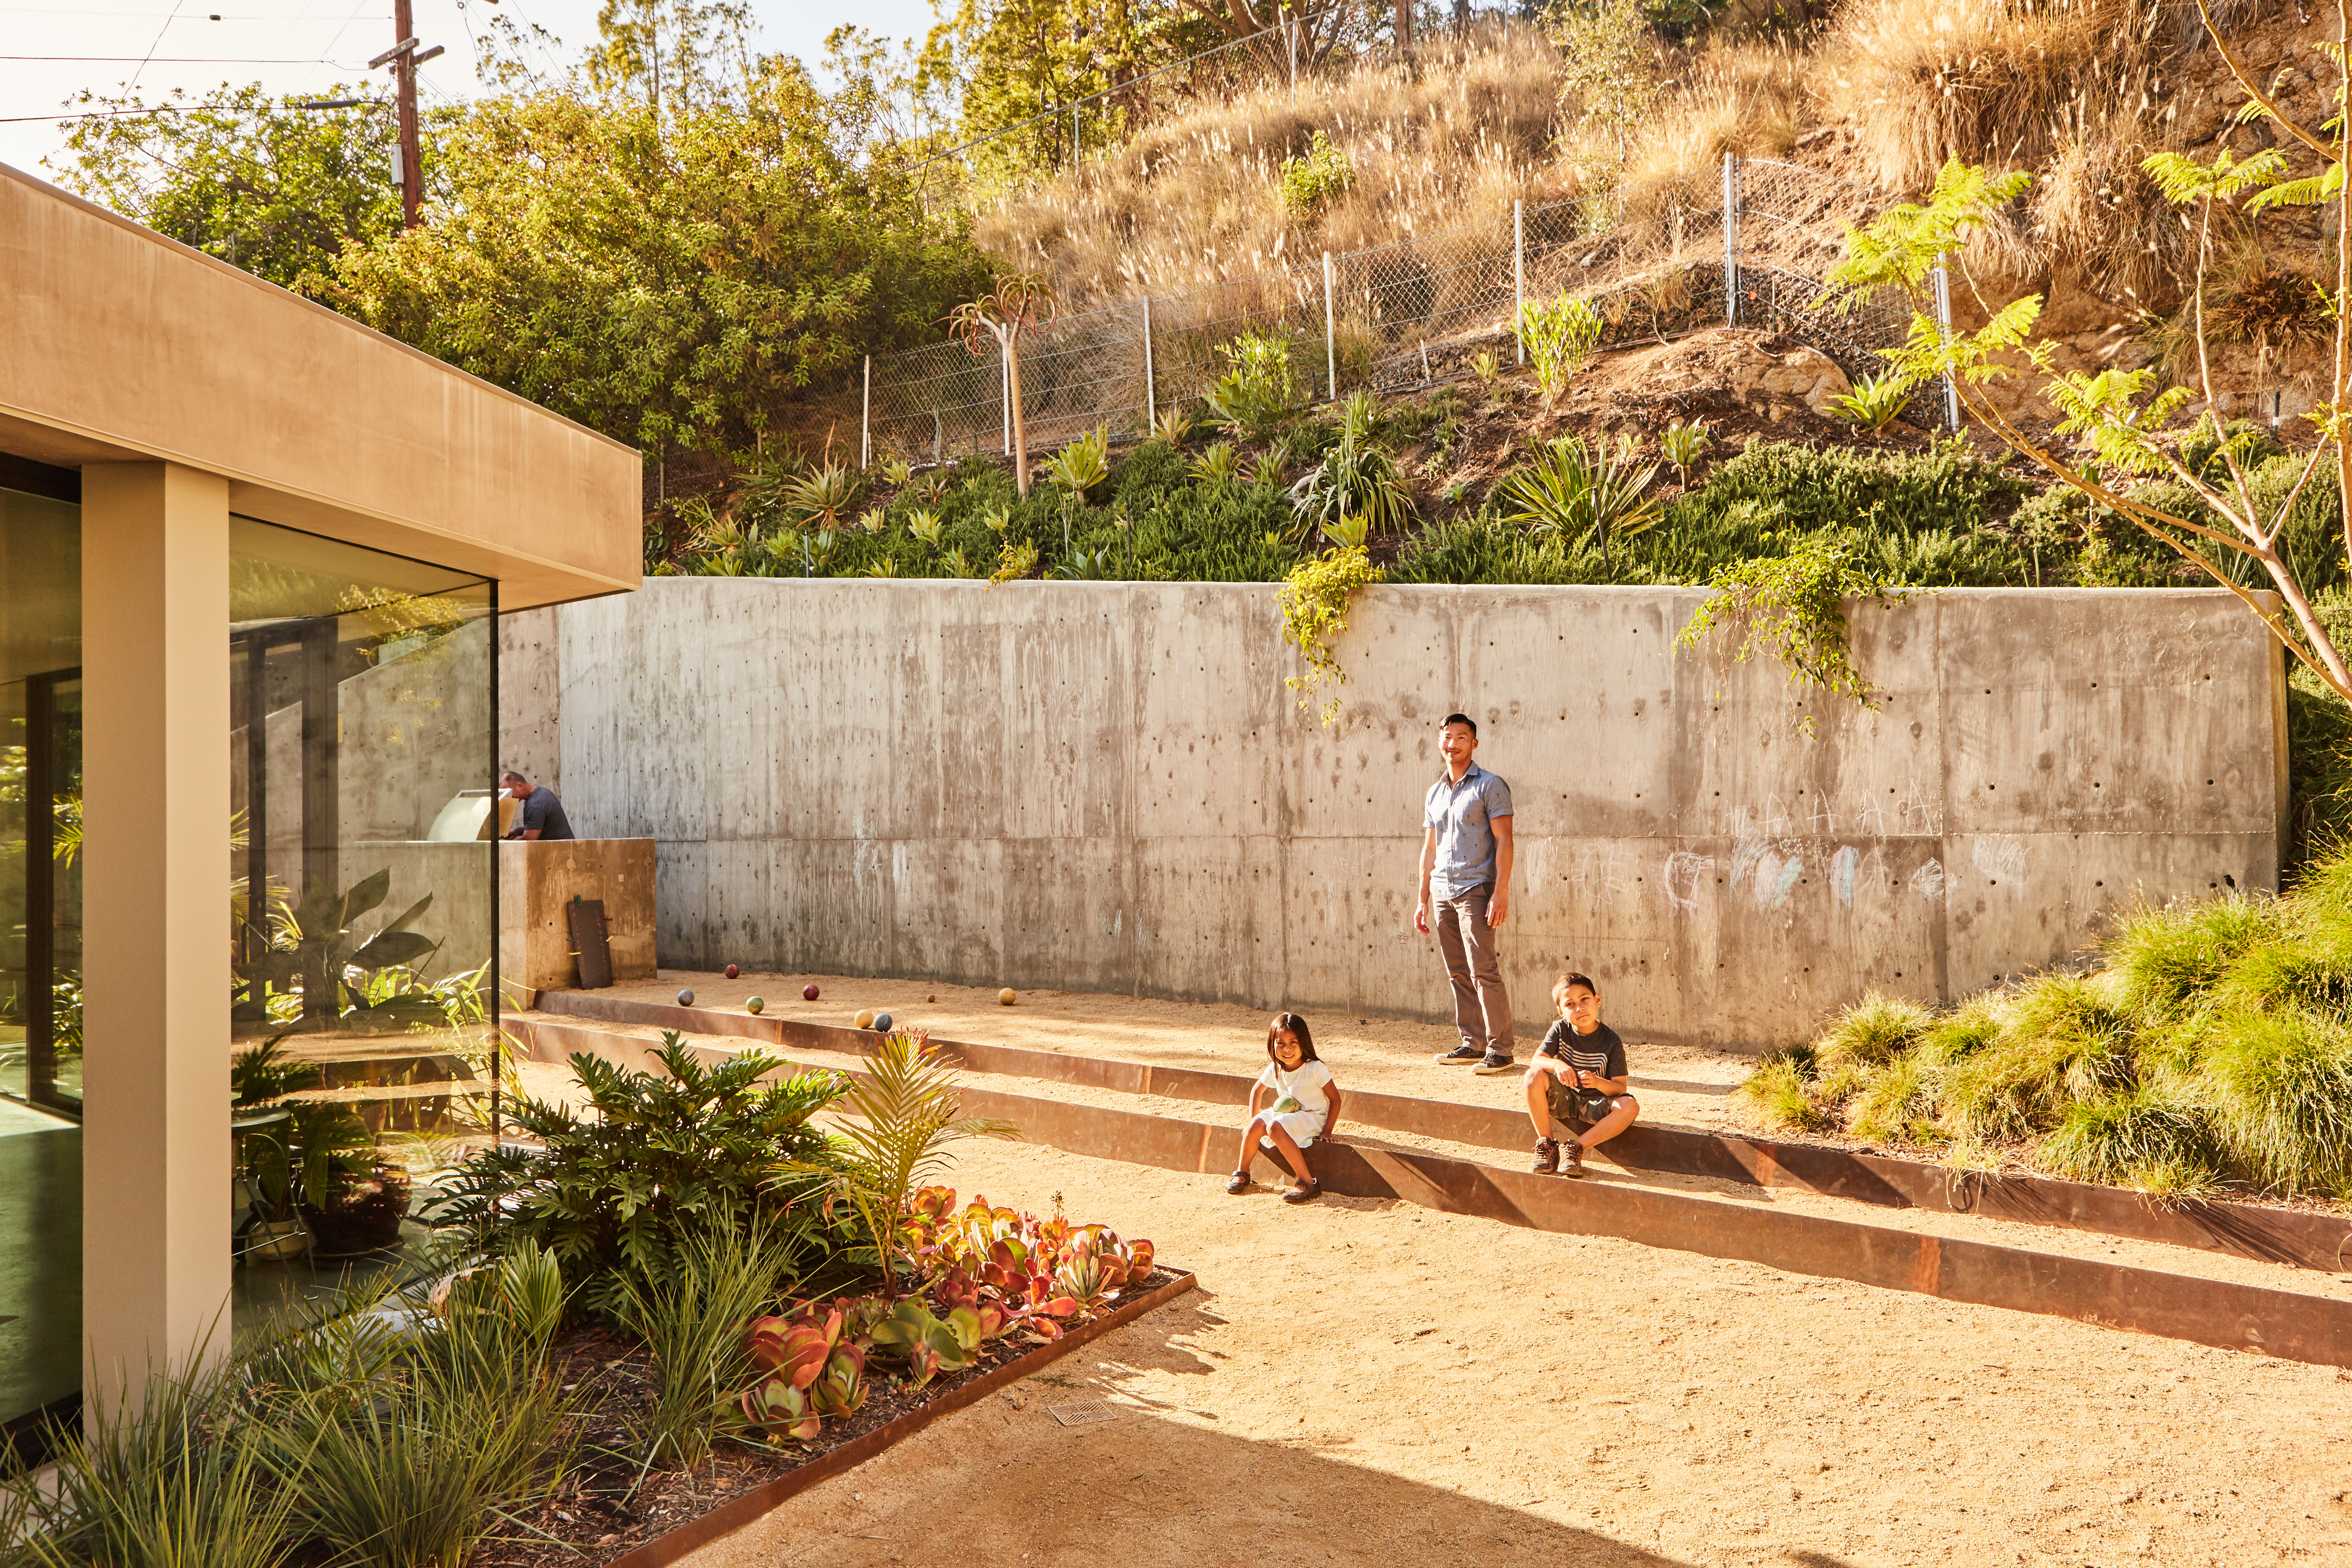 A Daring Concrete Home Rises on, and In, a Los Angeles Cliff - Curbed